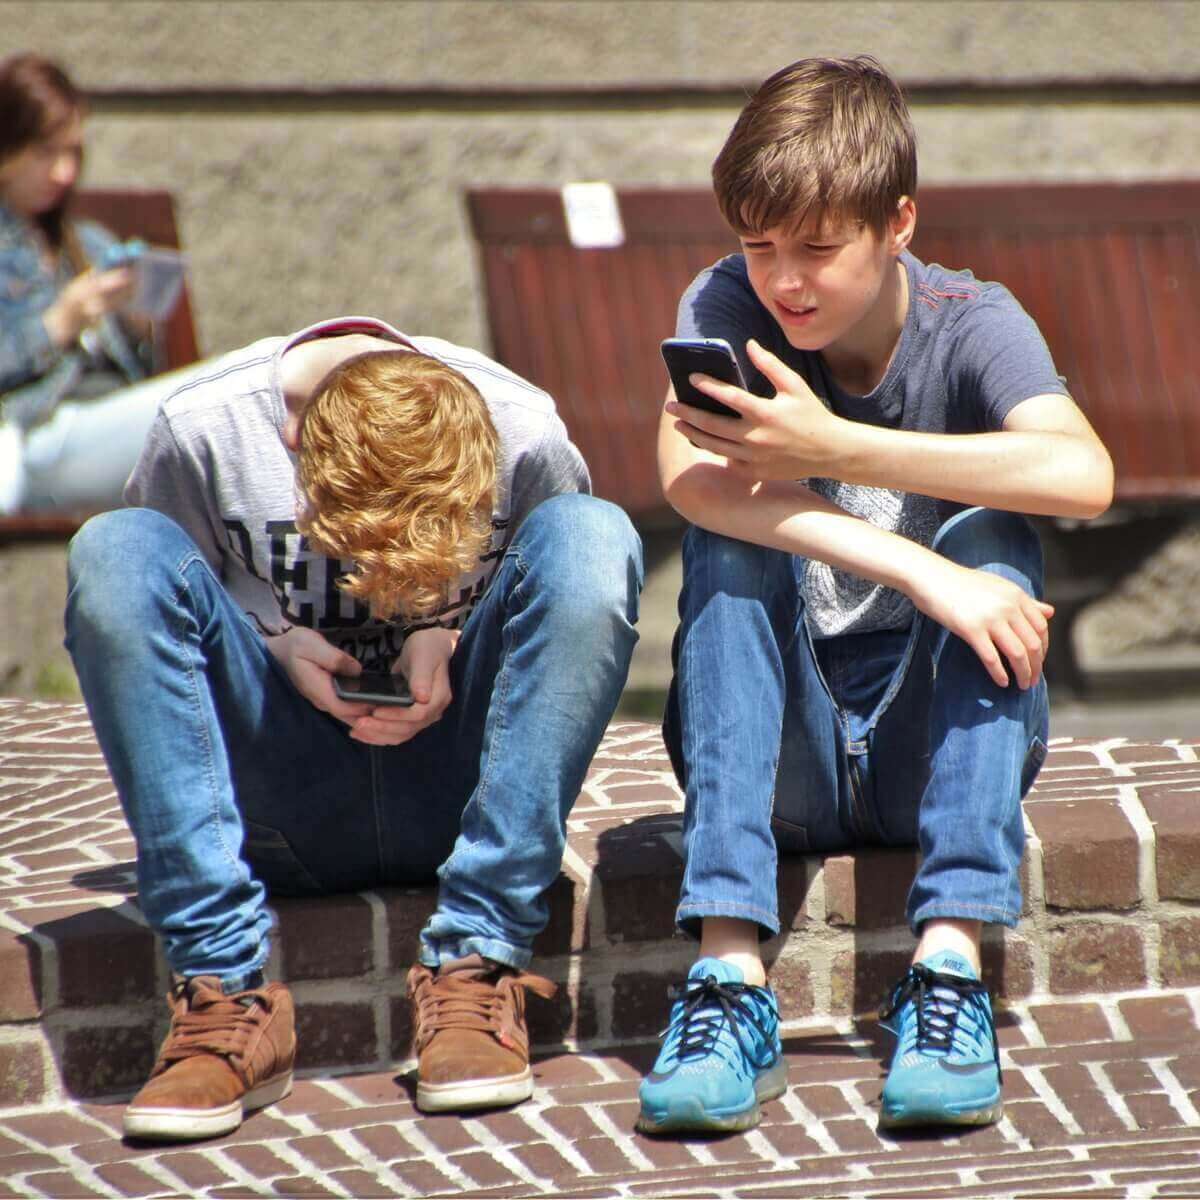 2 boy sitting on brown floor while using their smartphone 159395